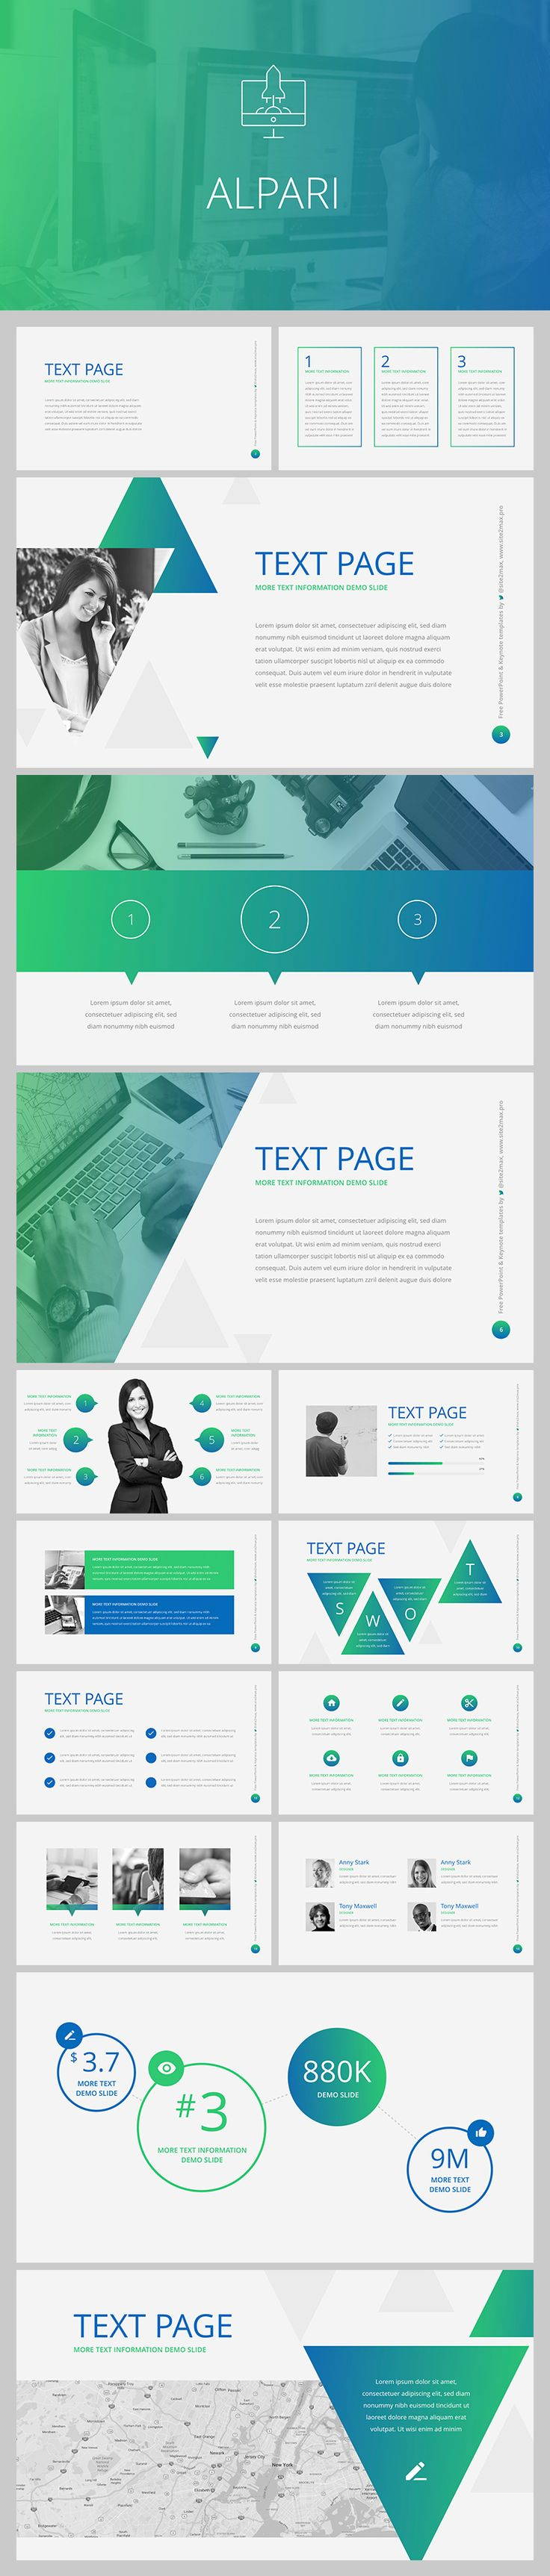 36 best free keynote template images on pinterest free keynote alpari marketing free powerpoint template for create business or marketing presentation toneelgroepblik Choice Image